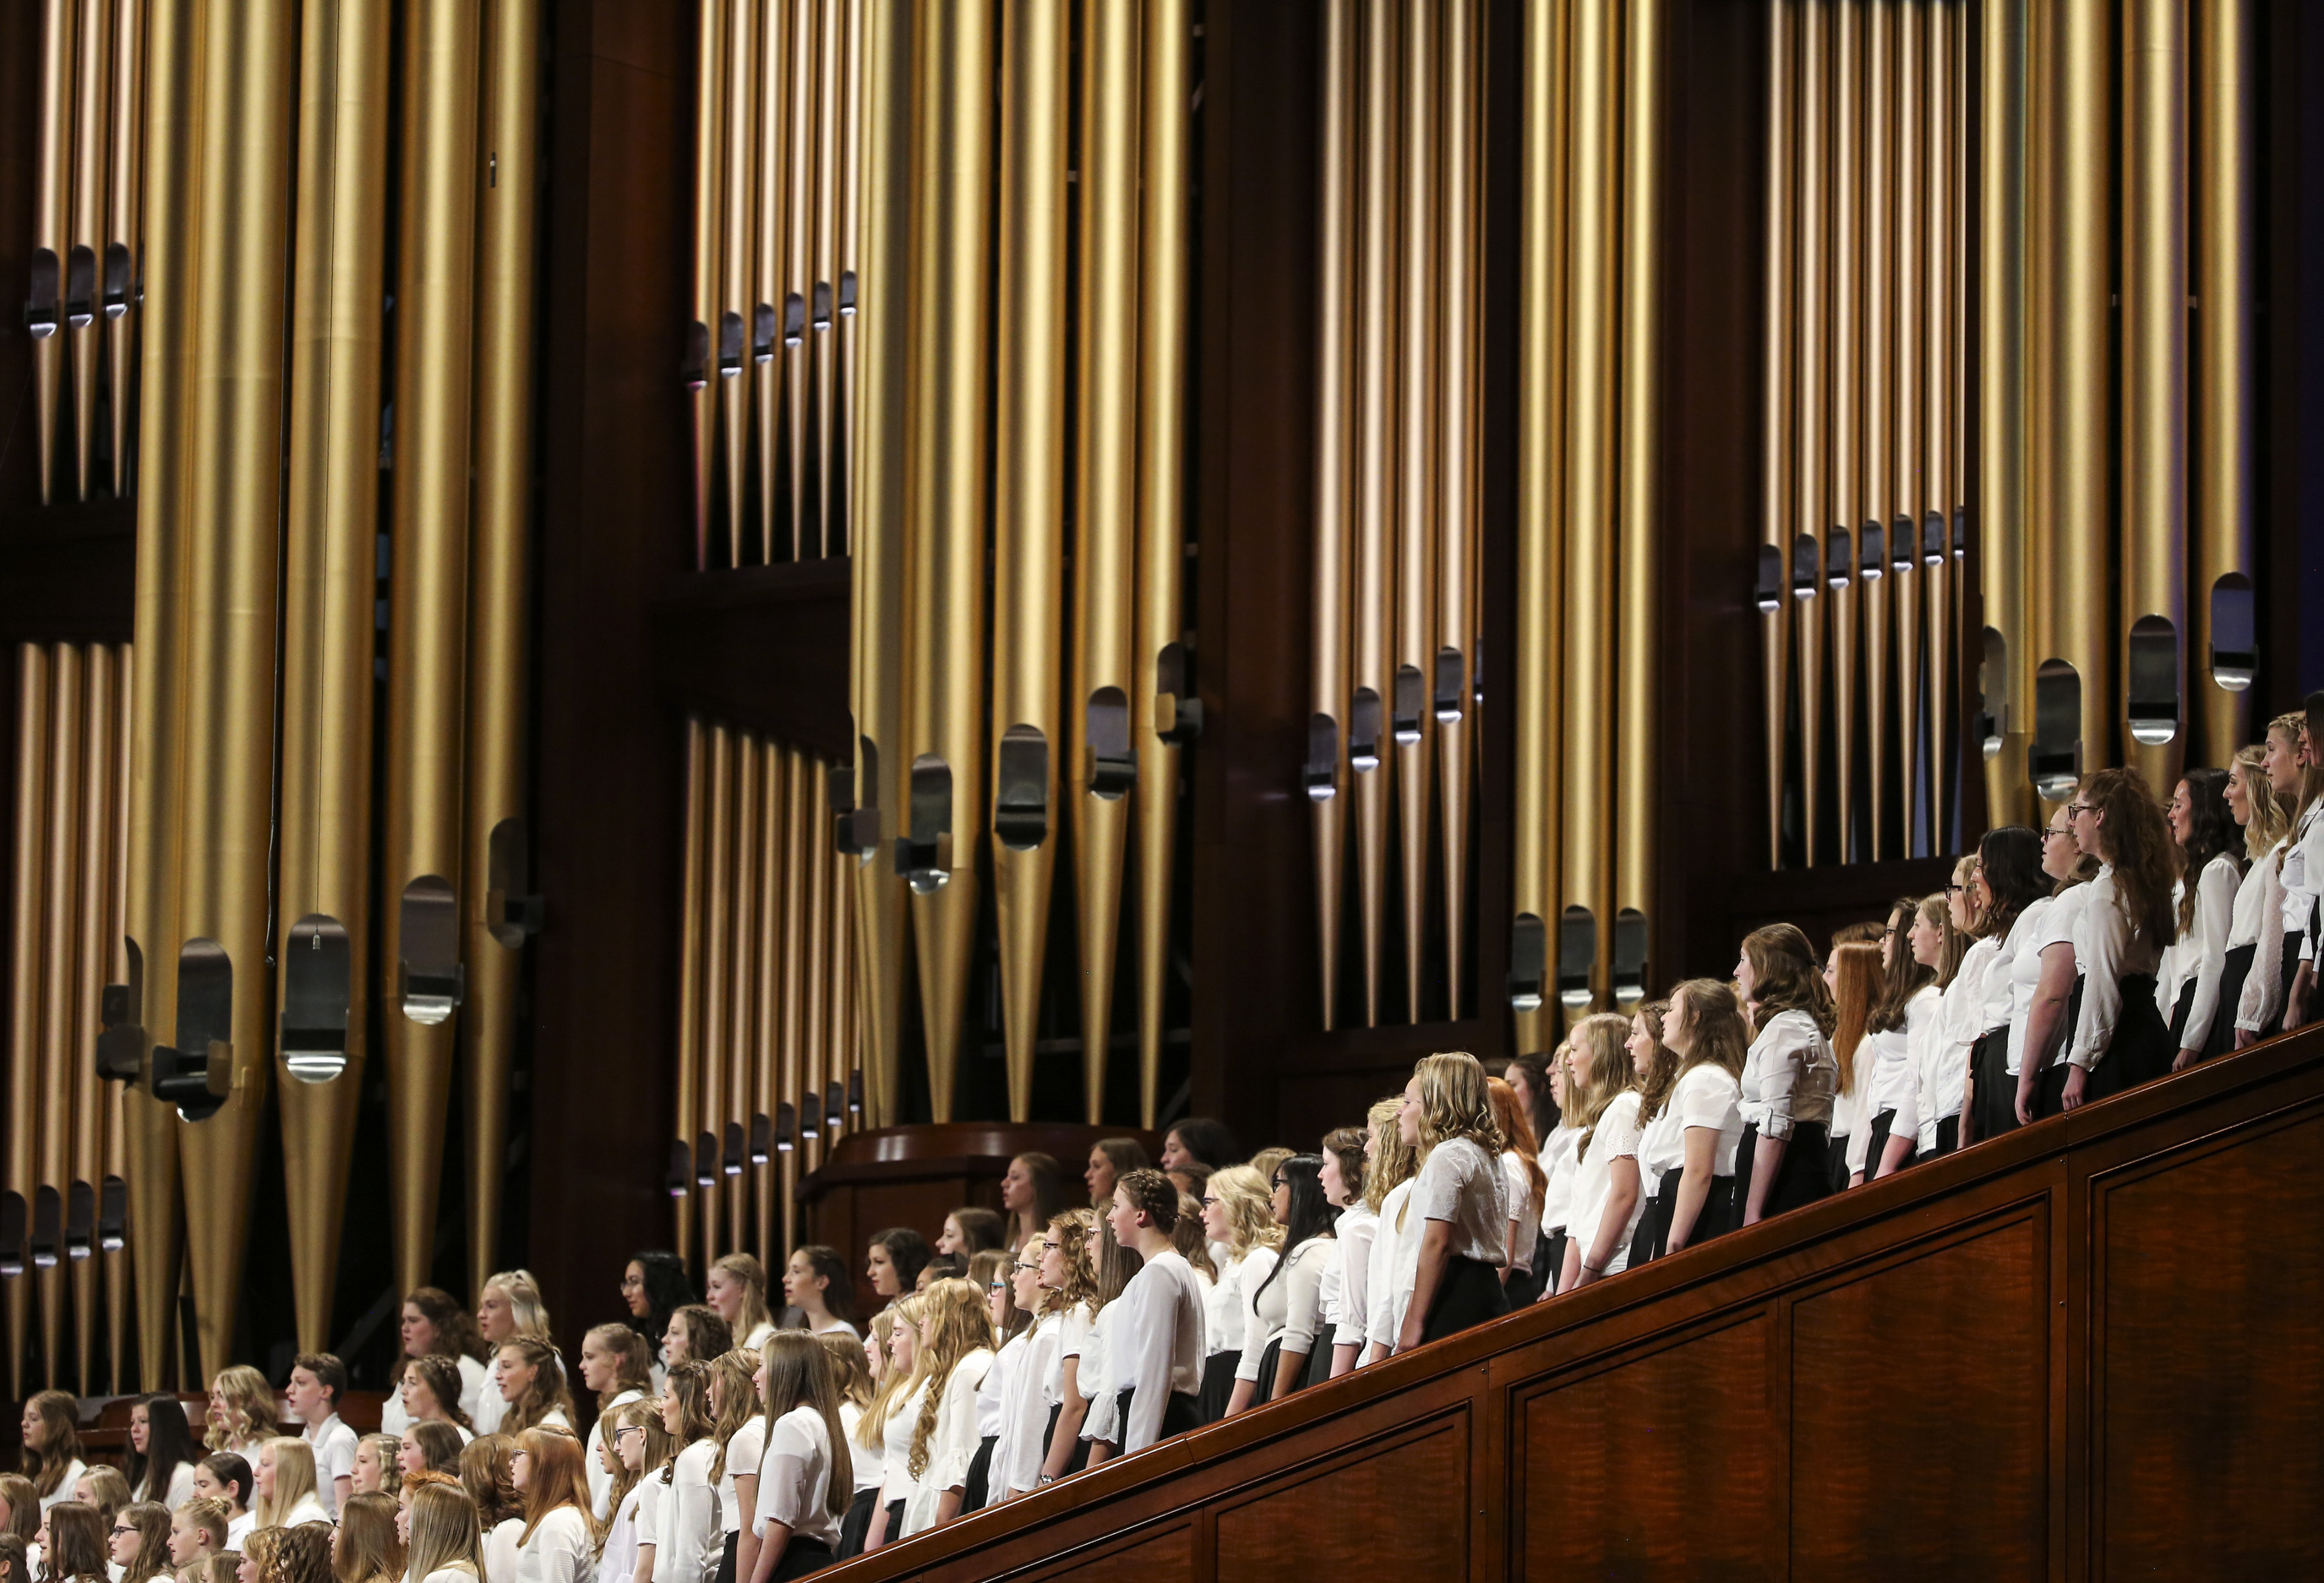 A choir of Primary girls and young women from stakes in West Jordan perform during the women's session of the 189th Semiannual General Conference of The Church of Jesus Christ of Latter-day Saints at the Conference Center in Salt Lake City on Saturday, Oct. 5, 2019.